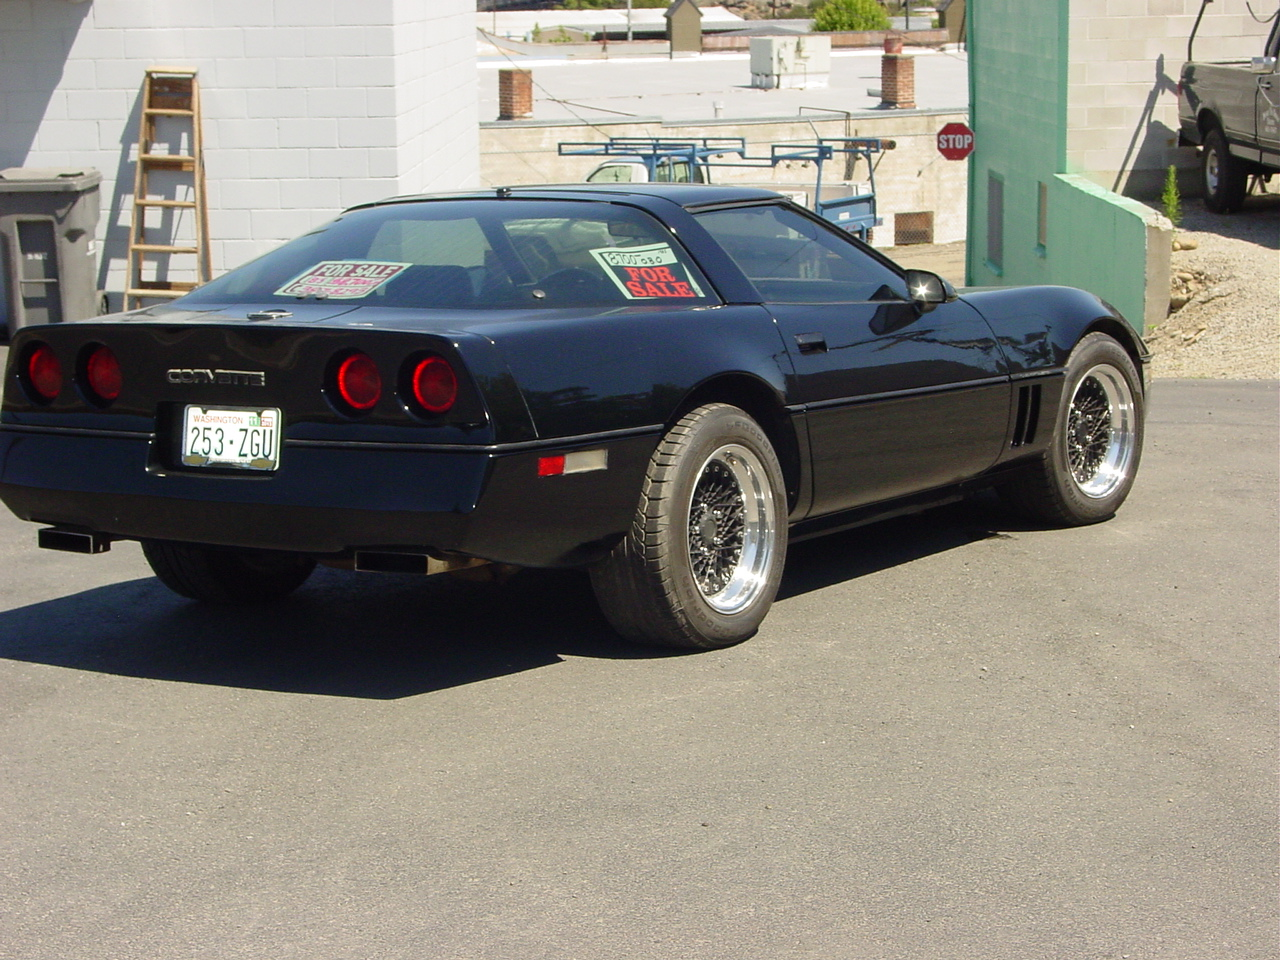 1969 Chevrolet Corvette Coupe Pictures T10135 pi13945405 furthermore 1983 Chevrolet Camaro Berli ta Black For Sale besides 82cam moreover Crossmembers also 1985 Chevrolet Corvette Pictures C421 pi36346125. on 1982 chevy camaro